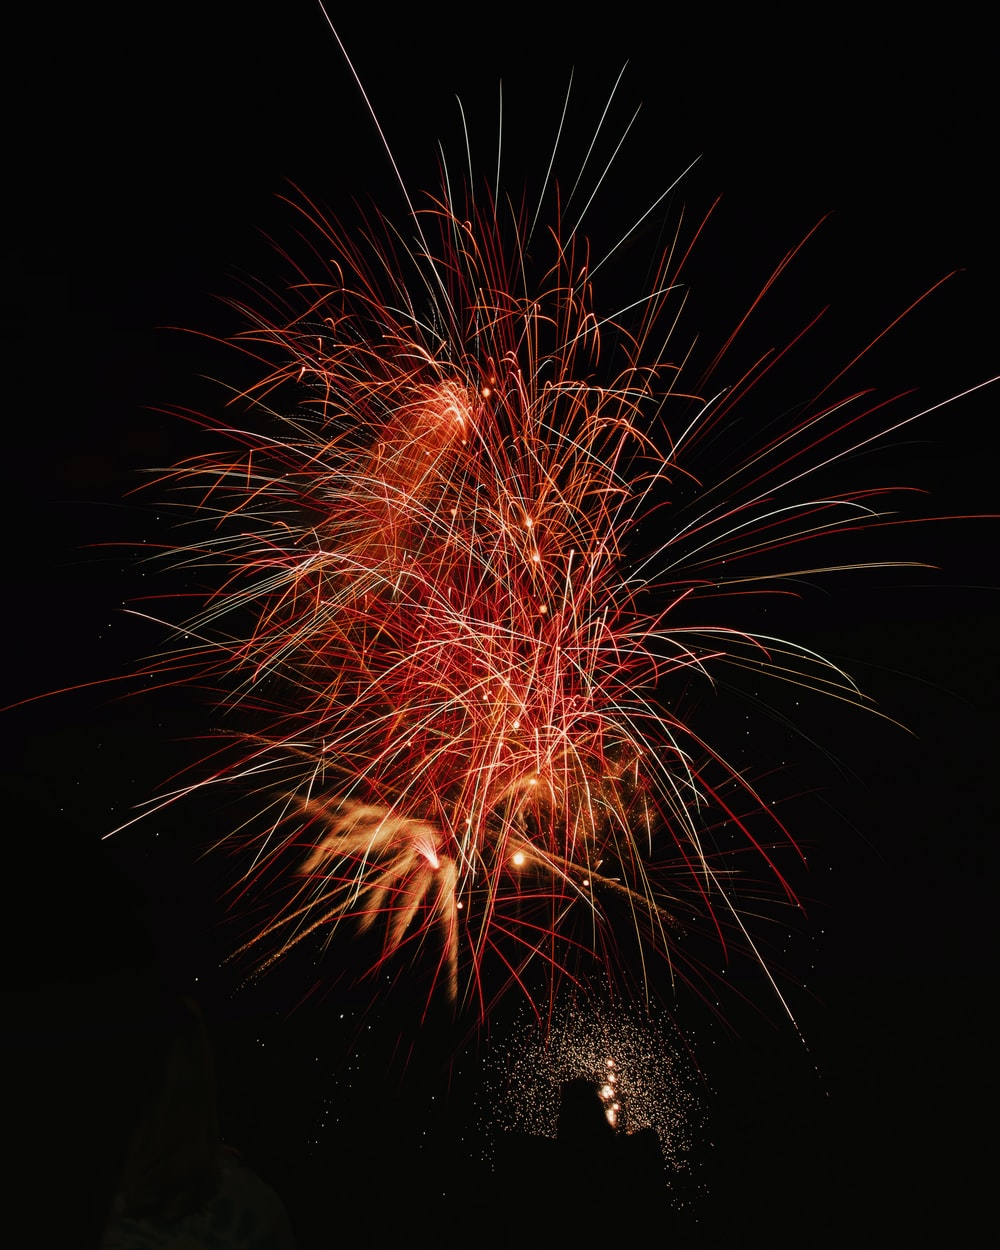 photography of red fireworks during nighttime